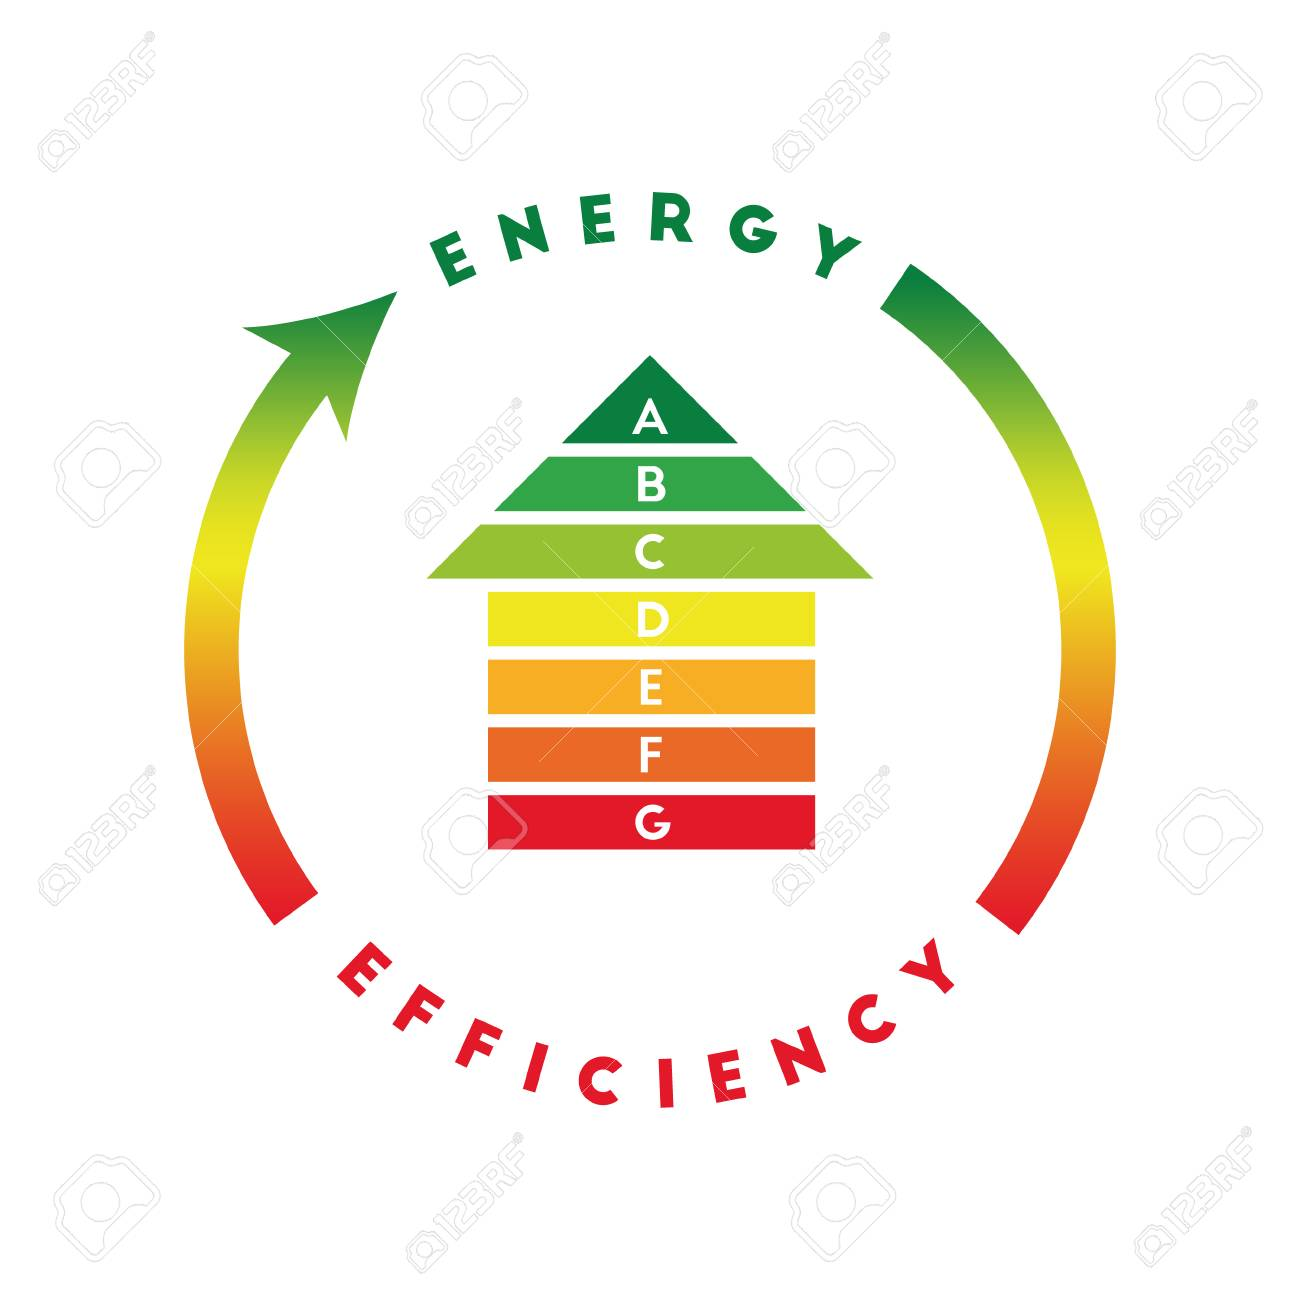 Superior Energy Efficiency Concept With House Made Of Energy Class Bars Stock Vector    77160631